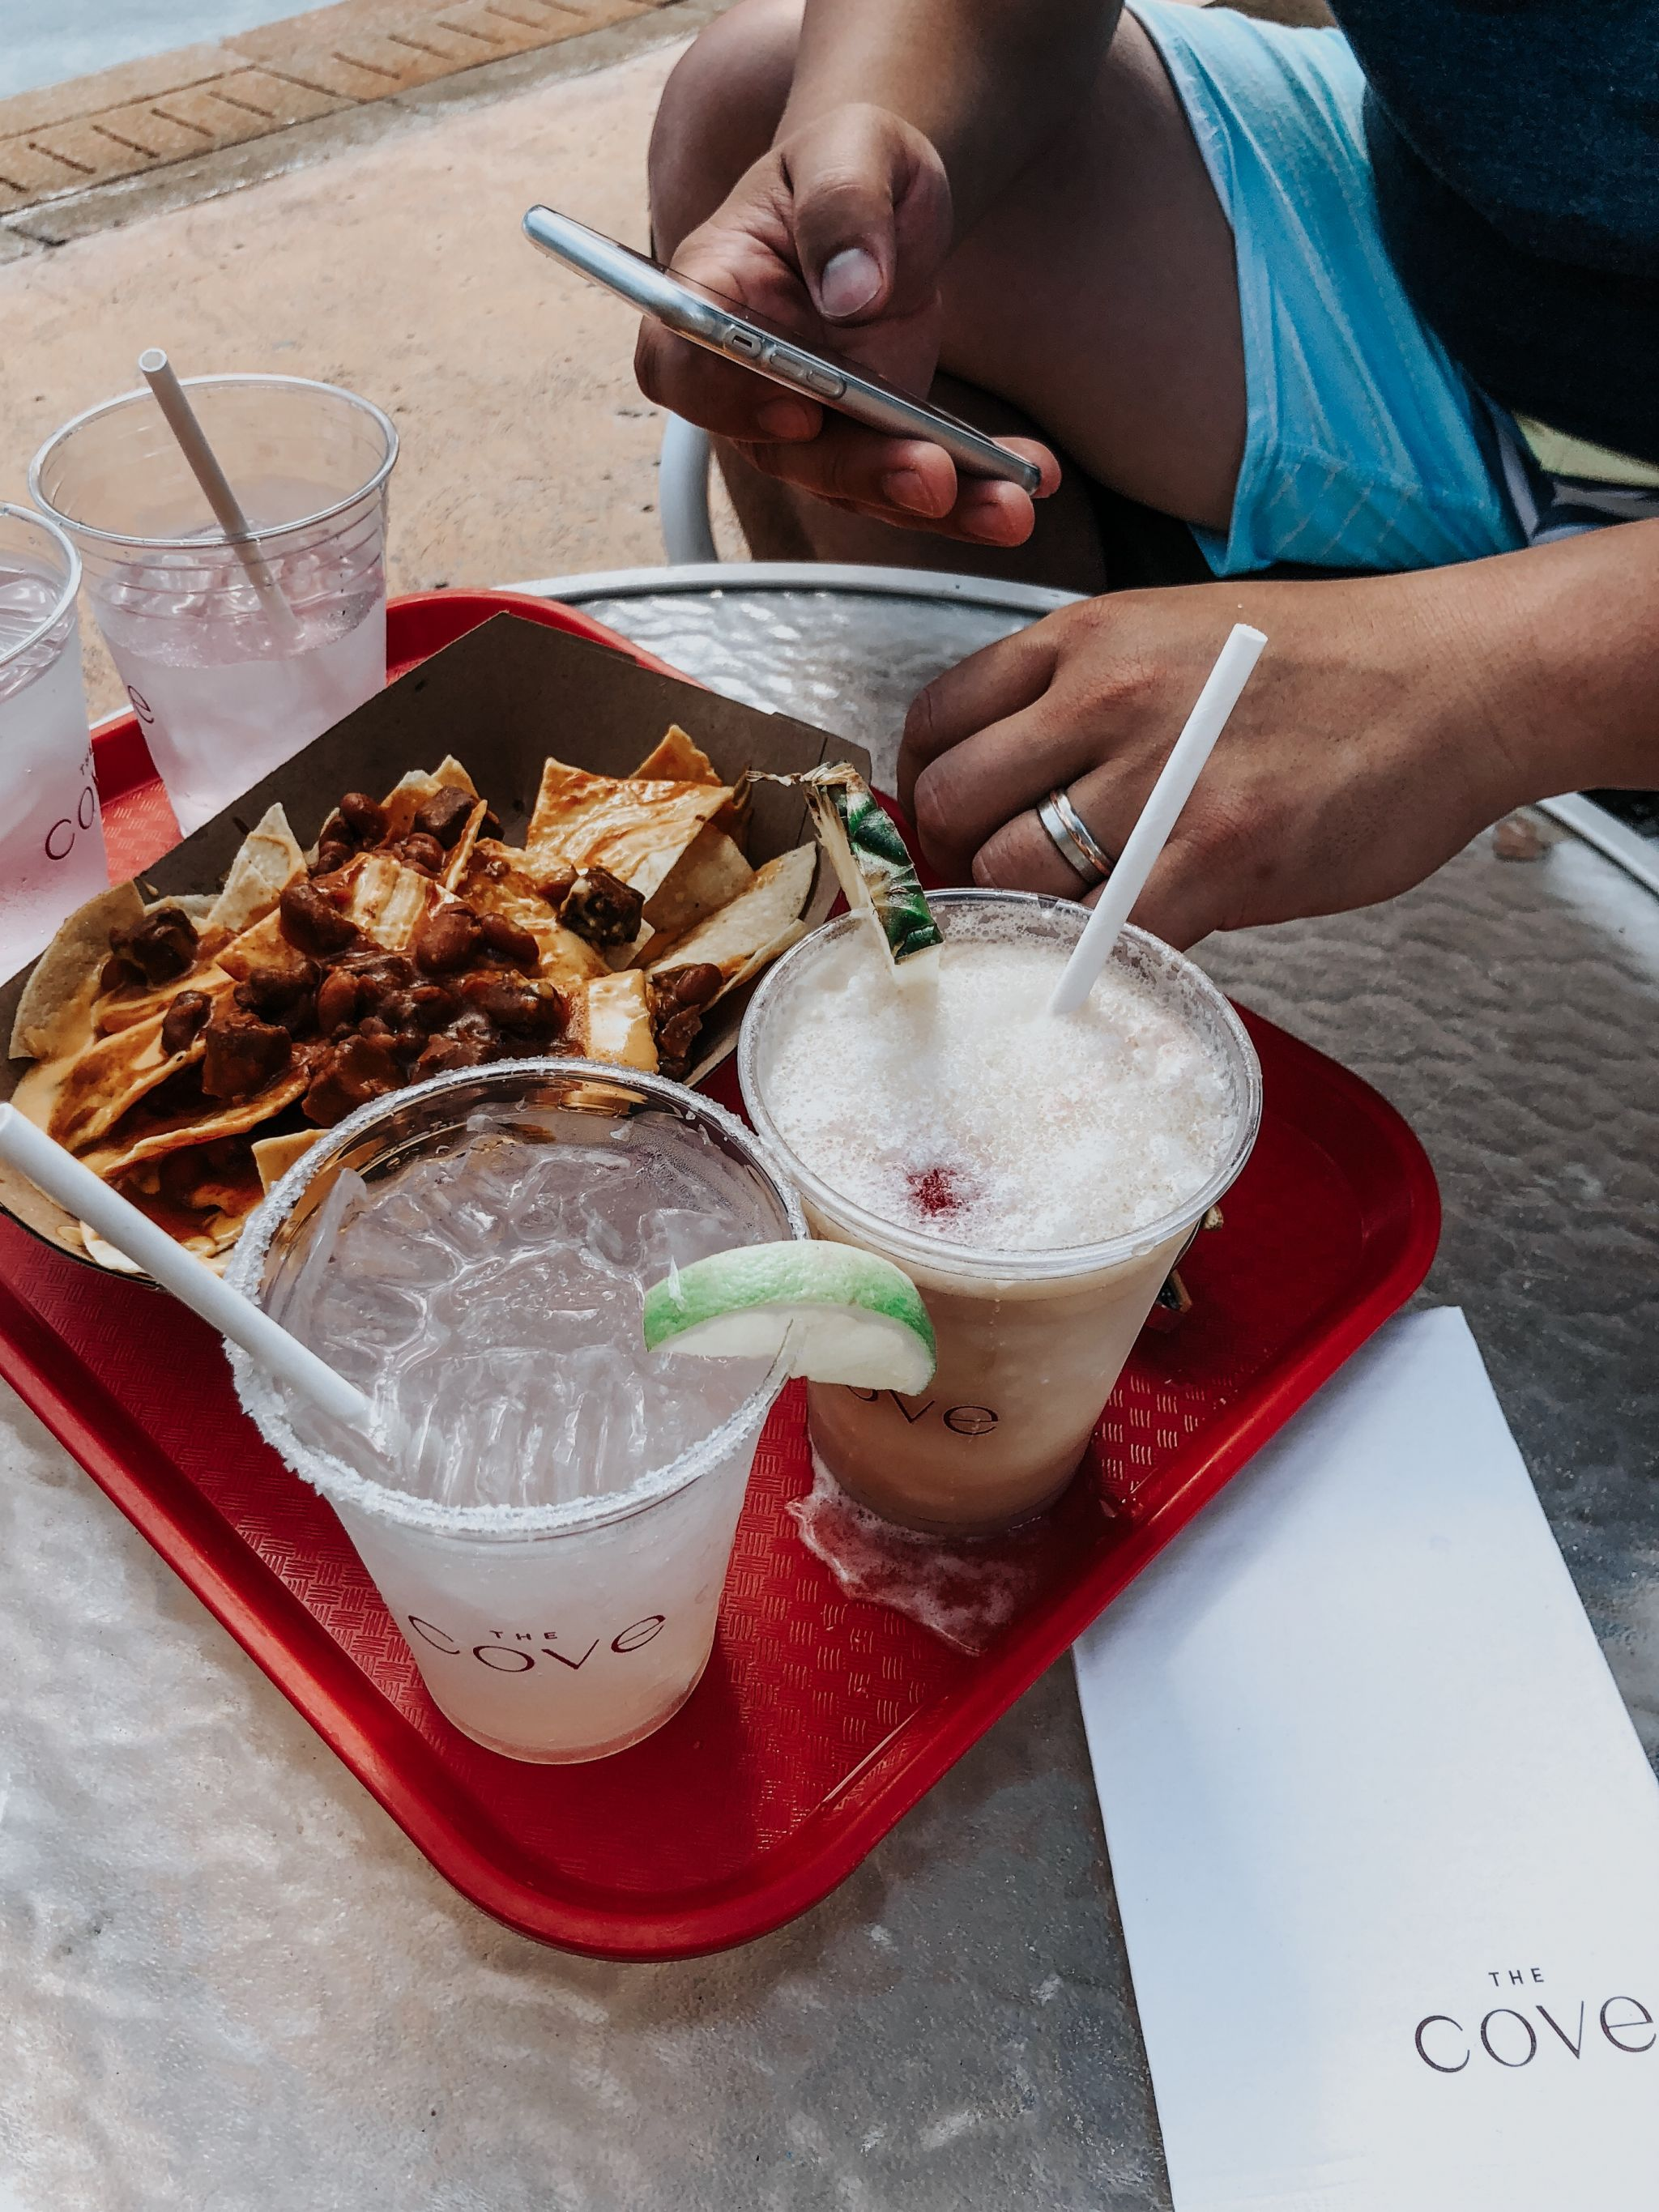 atlantis food by the pool, frozen drinks and nachos on tray